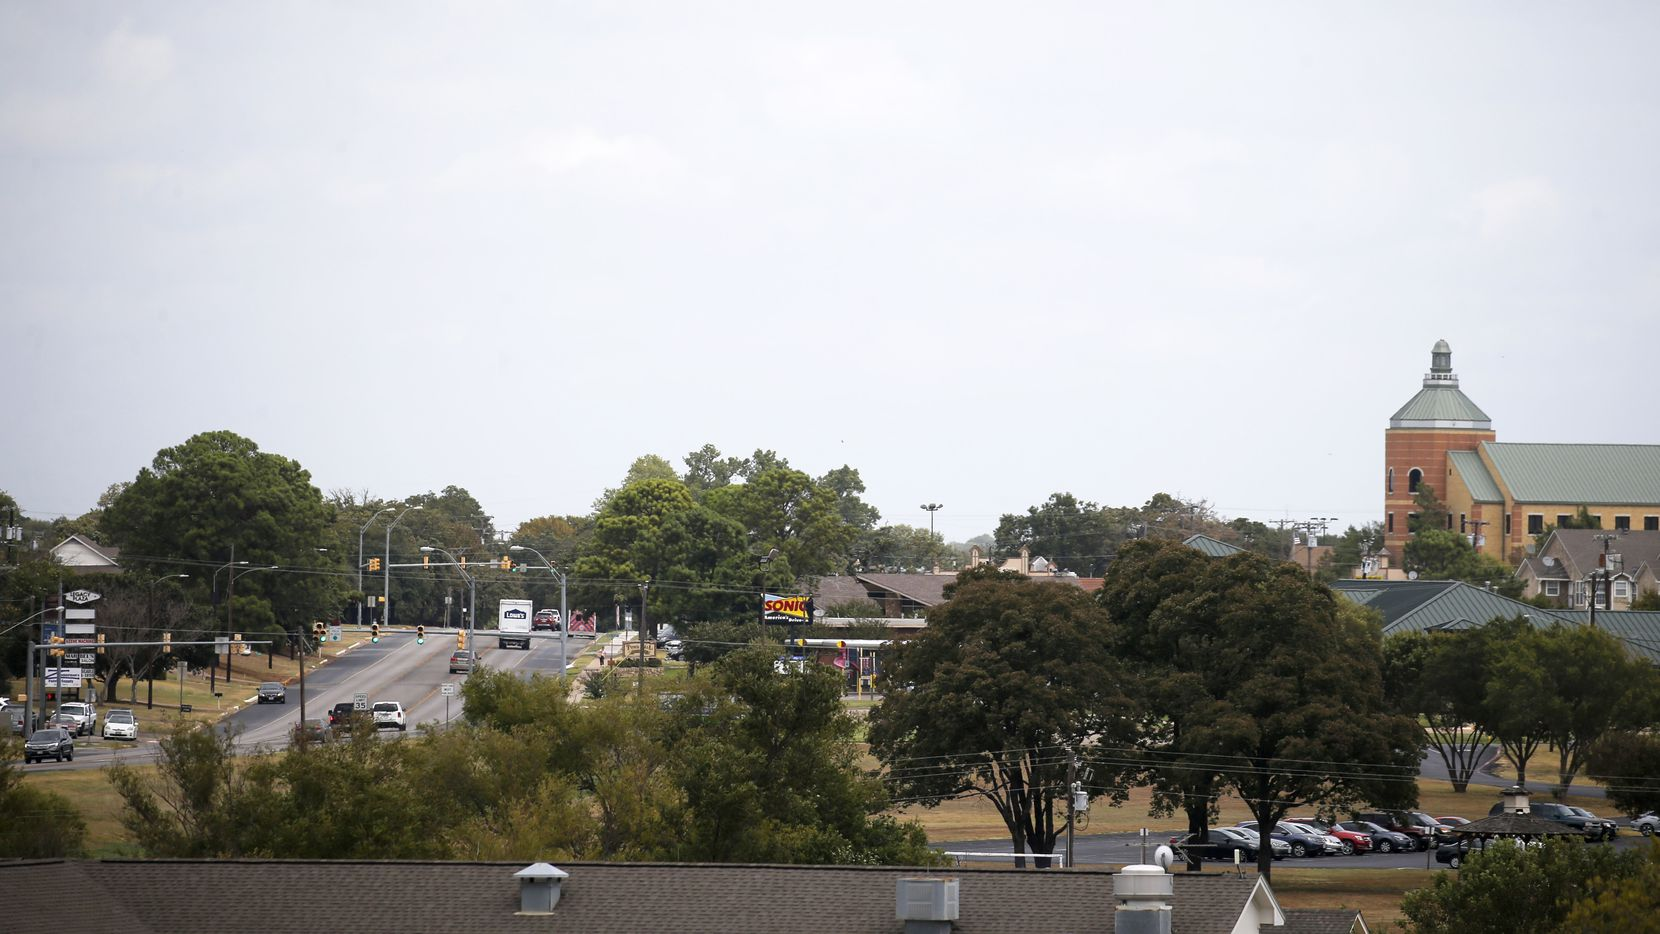 If President Trump's motorcade passes through Keene, it'll likely travel down Old Betsy Road, passing a Sonic, a Family Dollar, a famous duck pond, the entrance of Southwestern Adventist University and the new city hall built last year.